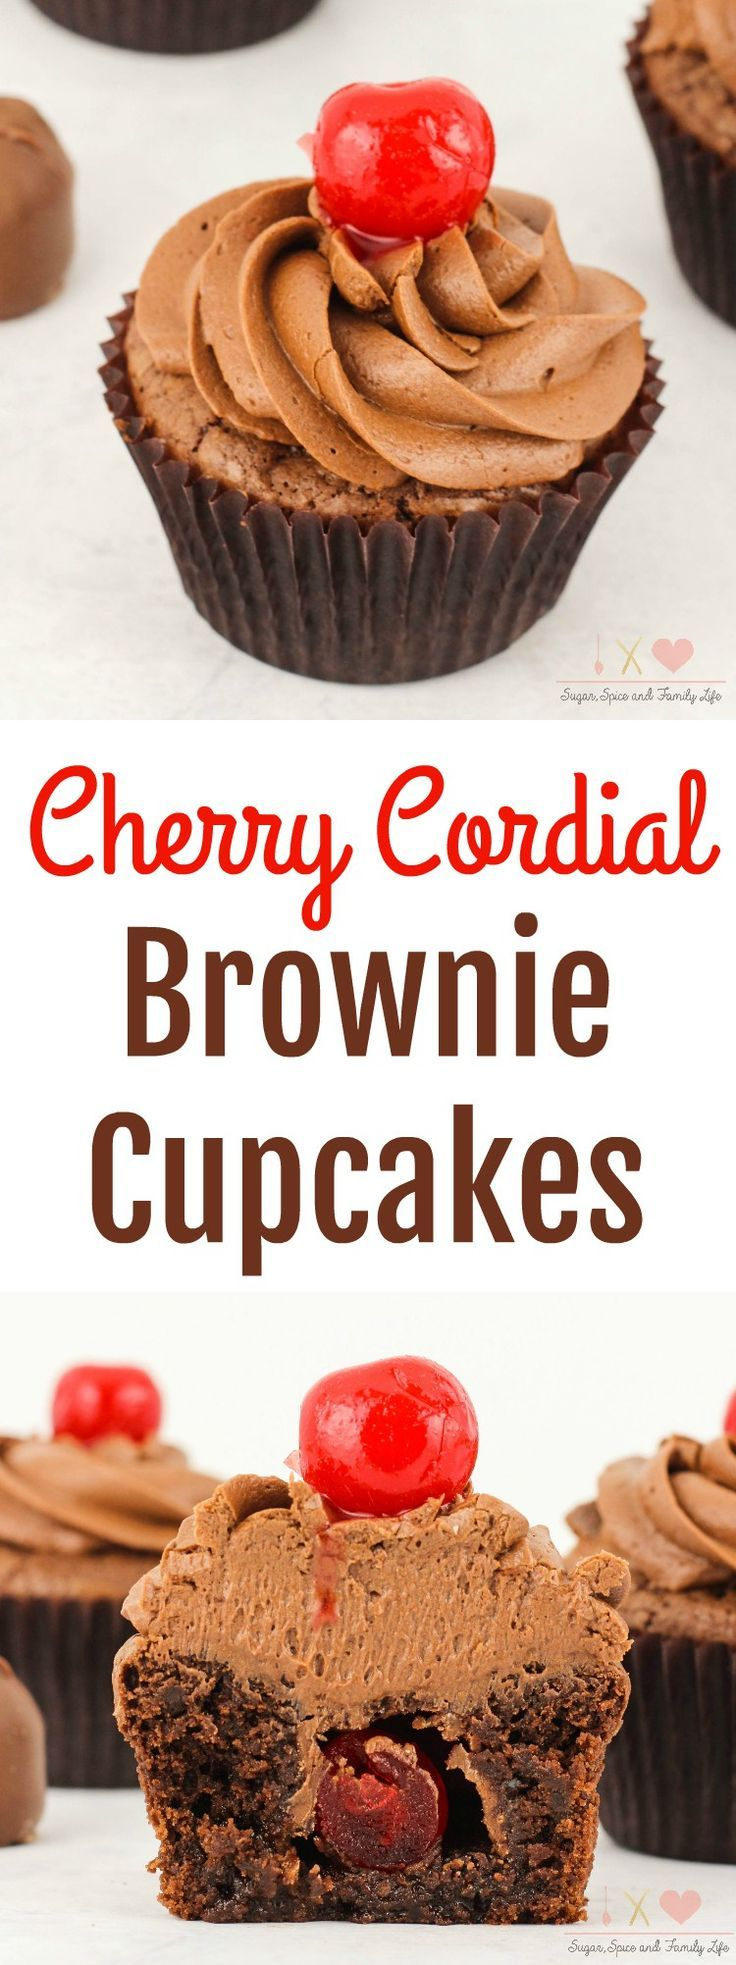 Cherry Cordial Brownie Cupcakes are a delicious chocolate cherry dessert. Each chocolate brownie cupcake is stuffed with a cherry cordial. Then coveredwith chocolate frosting and a maraschino cherry on top. Anyone who enjoys chocolate covered cherries will love this cherry brownie dessert. -  Cherry Cordial Brownie Cupcakes Recipe from Sugar, Spice and Family Life